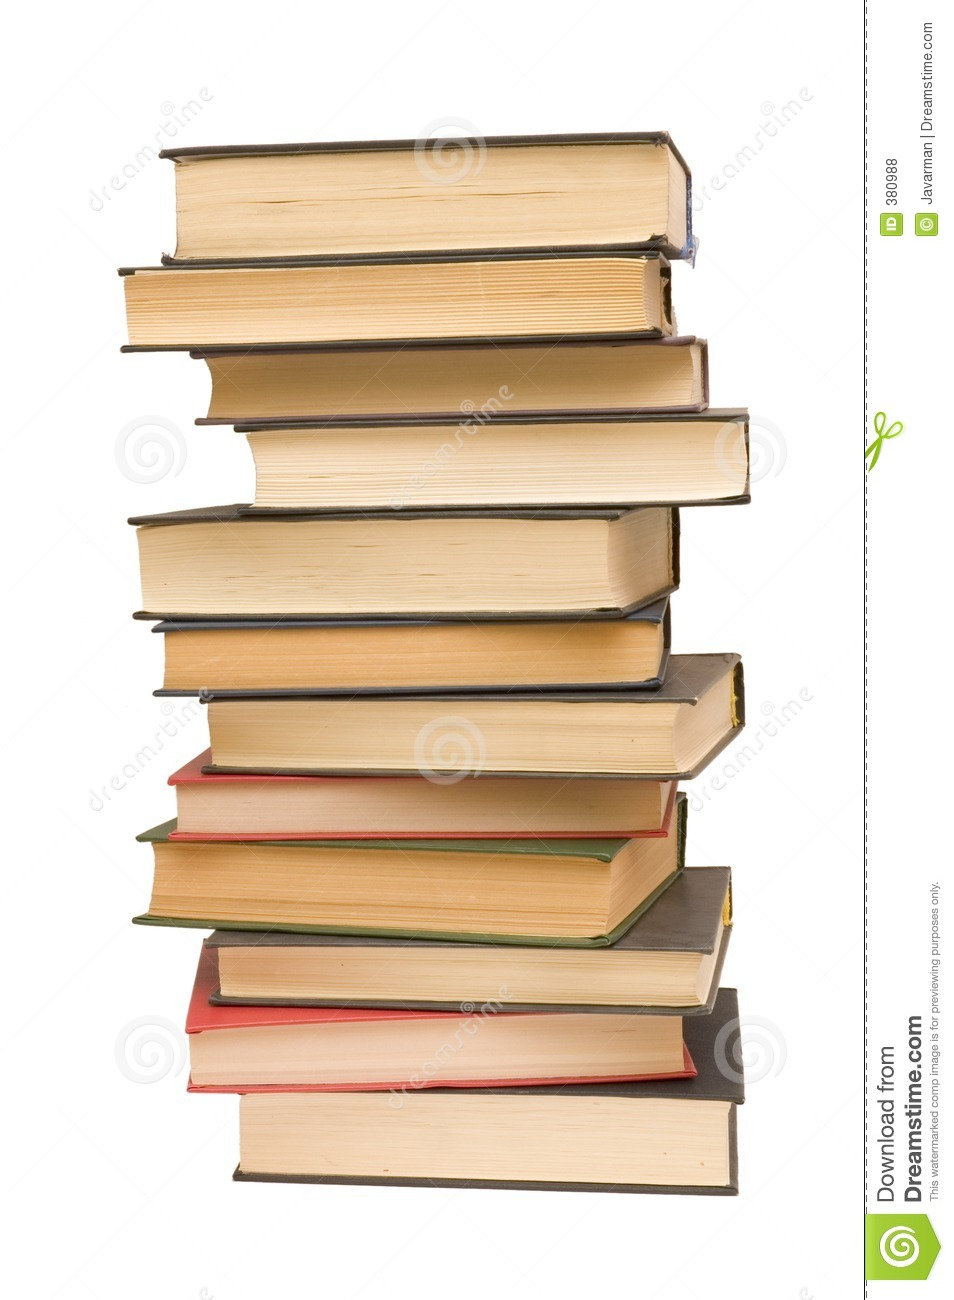 pile of books royalty free stock photos   image 380988